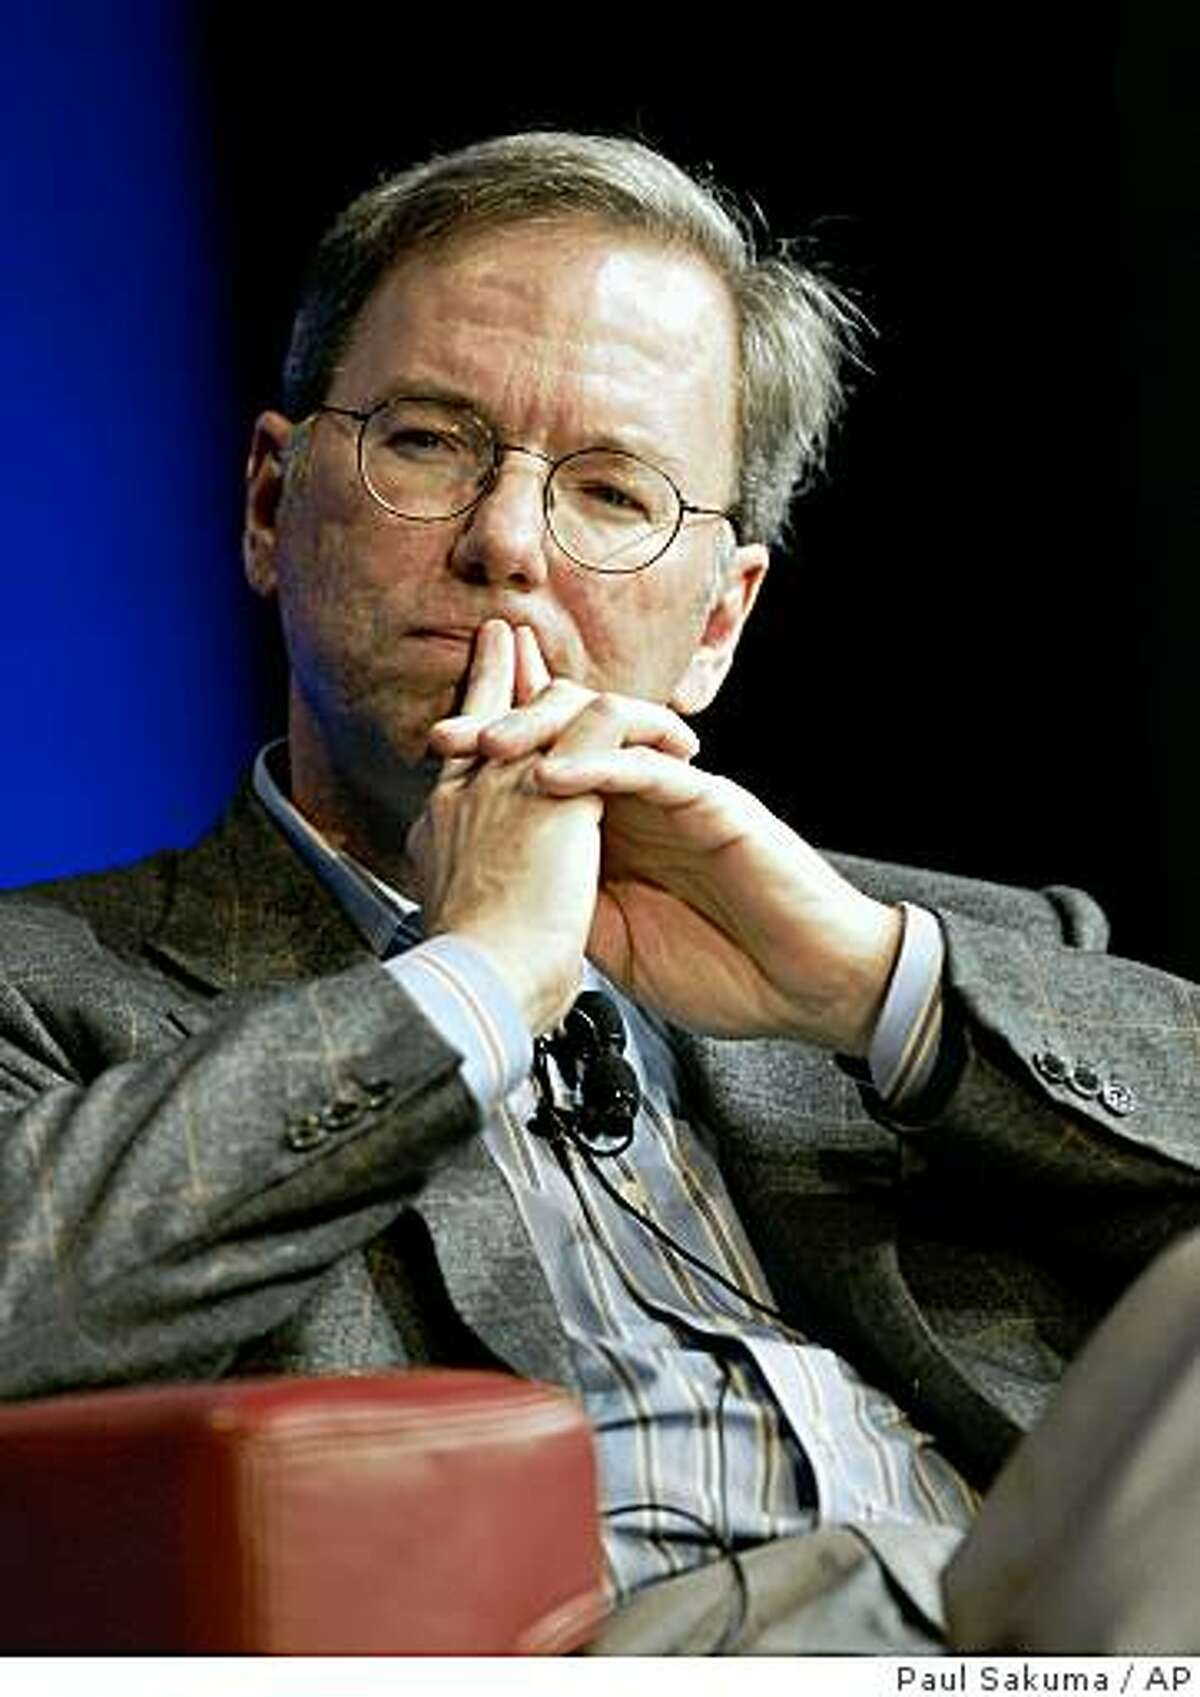 In this Oct. 27, 2008 photo, Google CEO Eric Schmidt ponders a question during a meeting at Google headquarters in Mountain View, Calif. Google Inc. on Thursday, April 16, 2009 announced it eked out a higher profit in the first quarter as the Internet search leader trimmed its work force and winnowed other expenses to overcome the slowest revenue growth since since the company went public nearly five years ago. (AP Photo/Paul Sakuma)